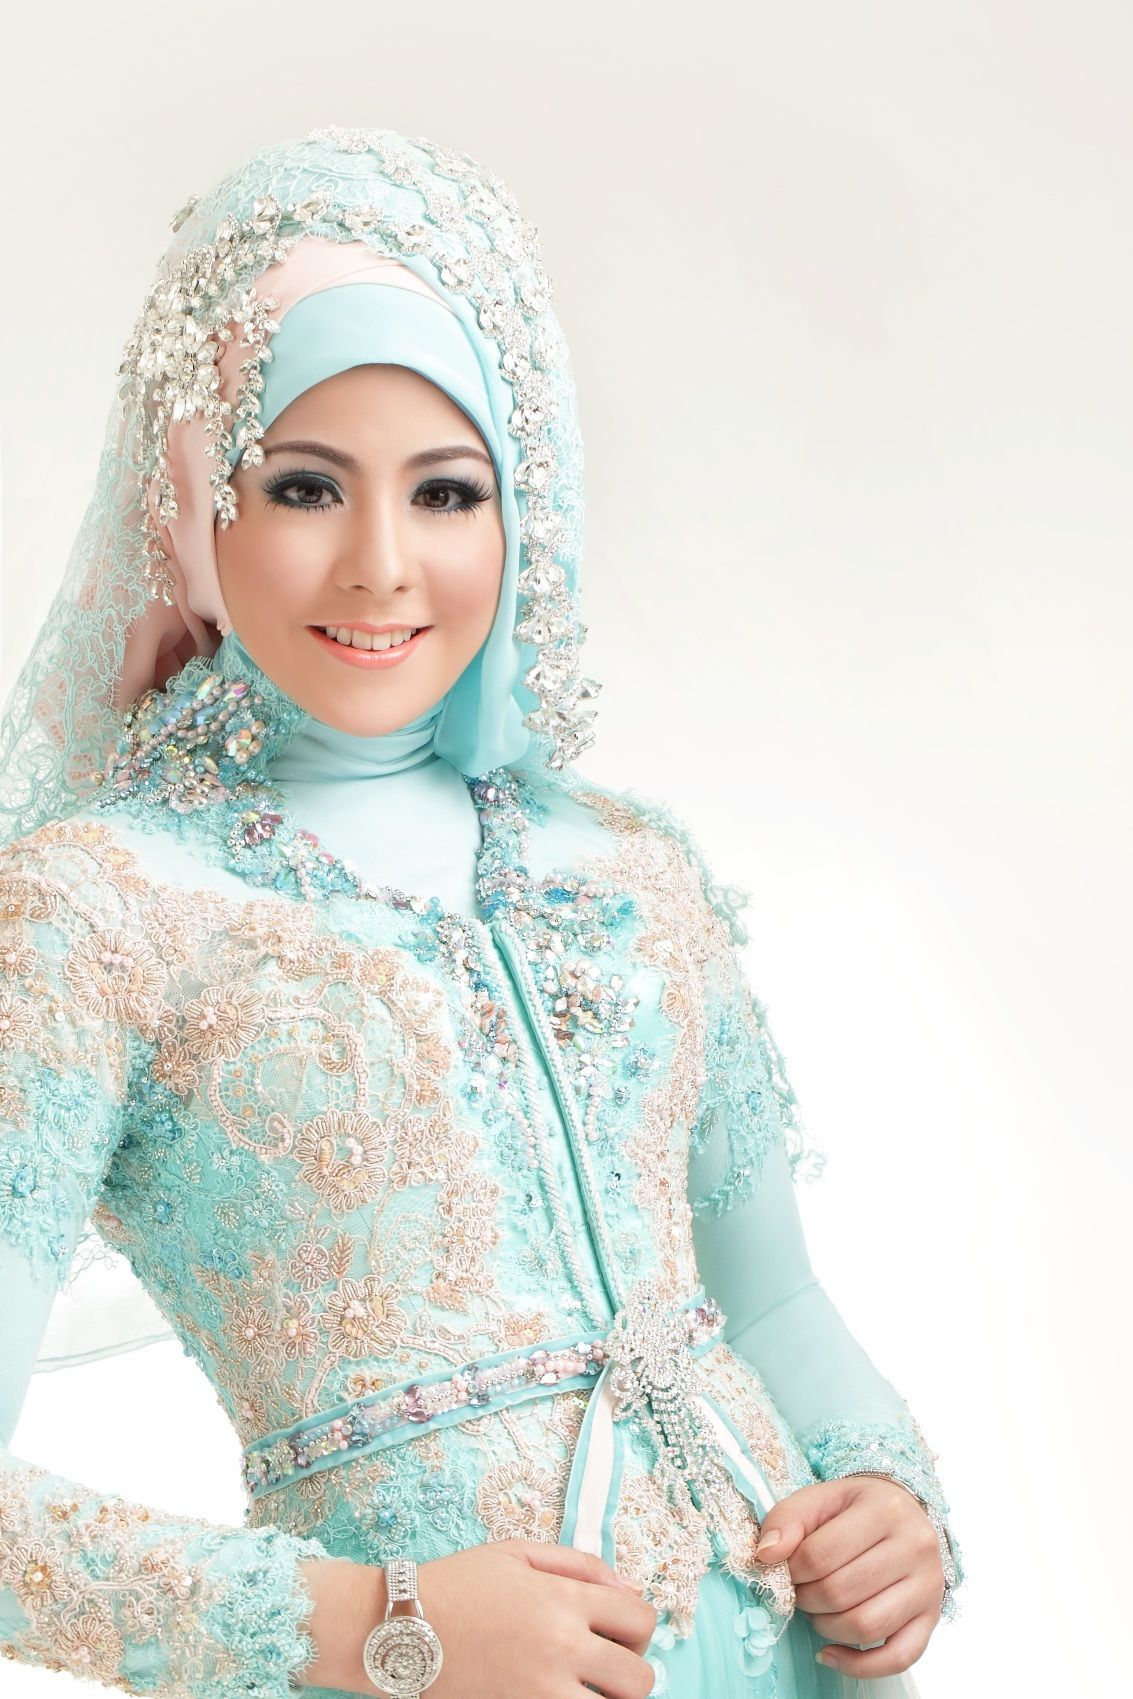 Tata Rias Pengantin Berjilabbajumuslimpengantin Things To Wear